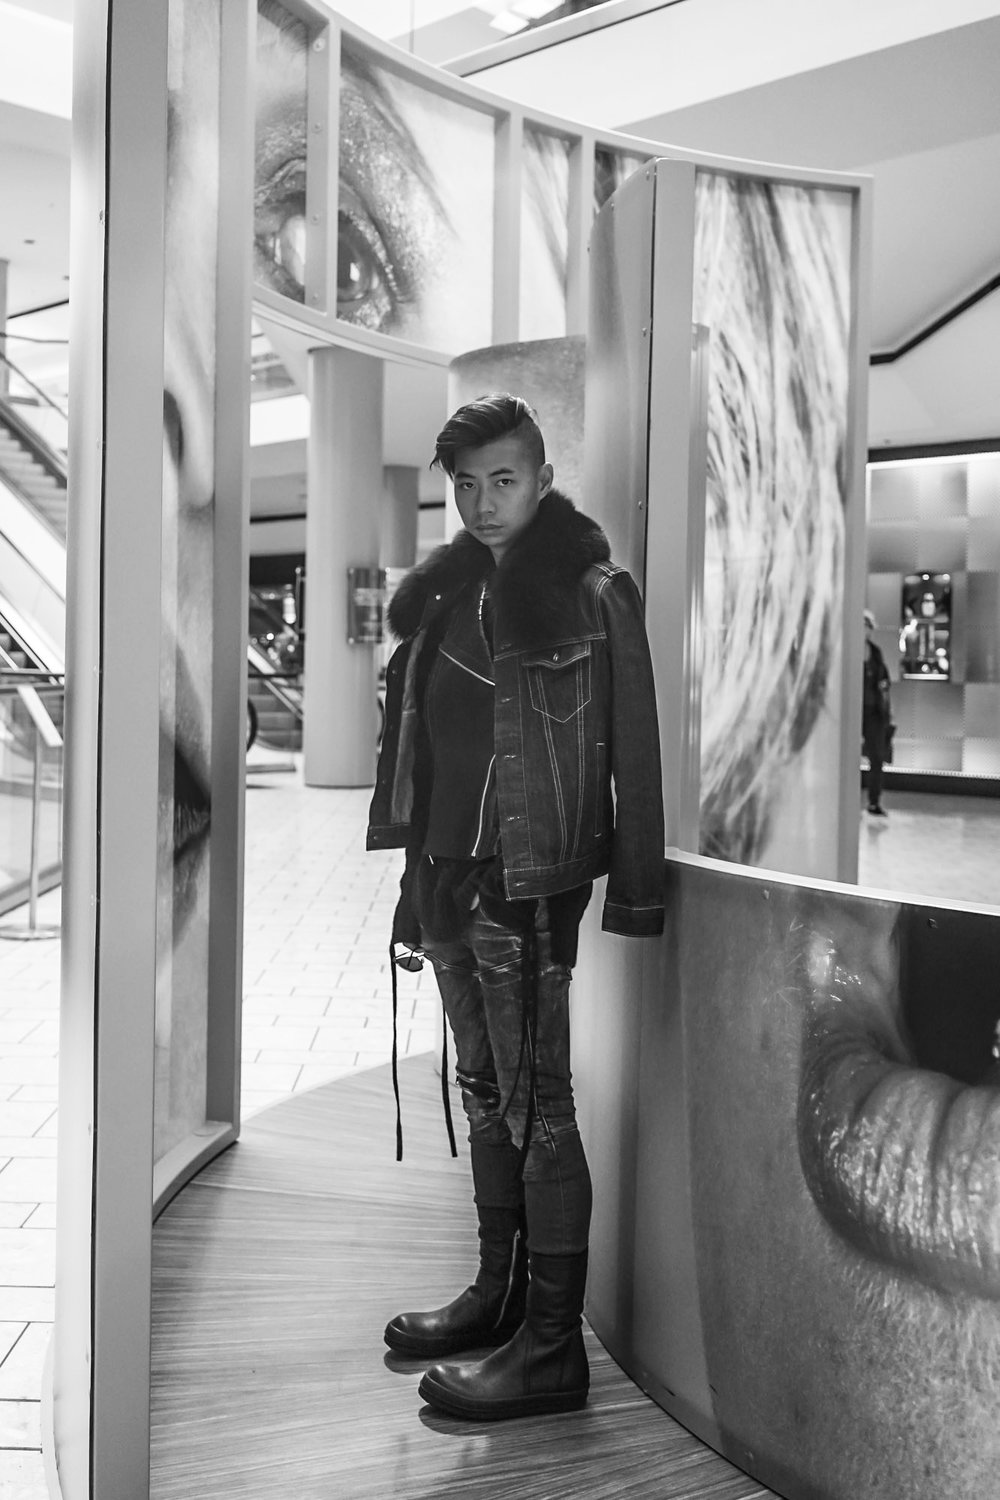 OOTD: Saint Vivian Worth fur denim jacket, Tadashi Shoji laser-cut leather vest, G-Star RAW faded denim, Rick Owens zip-up boots